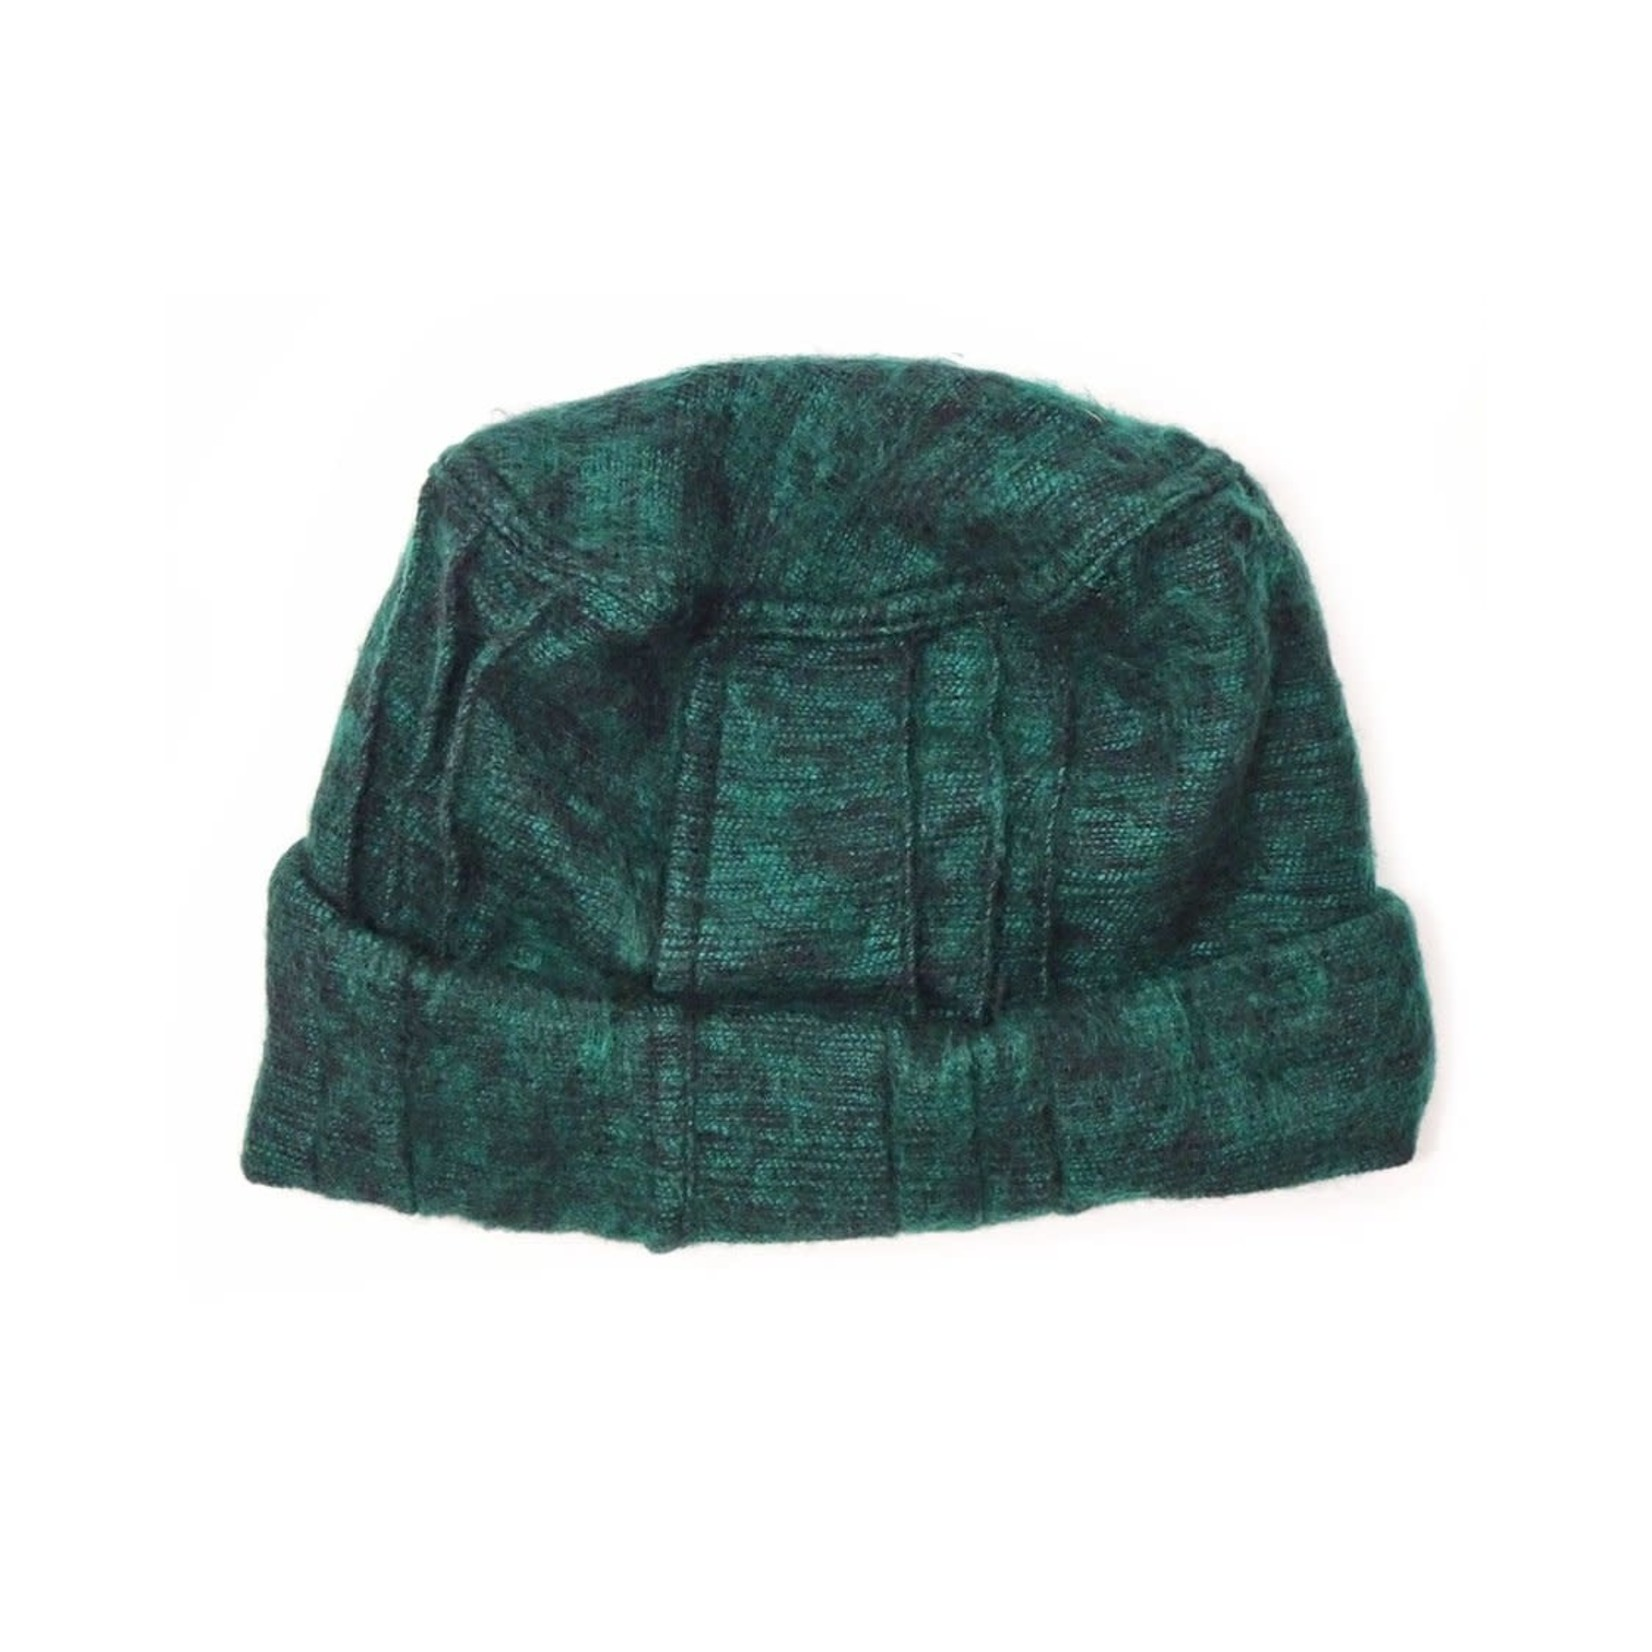 Zig Zag Asian Brushed Woven Pashtun Hat in Forest